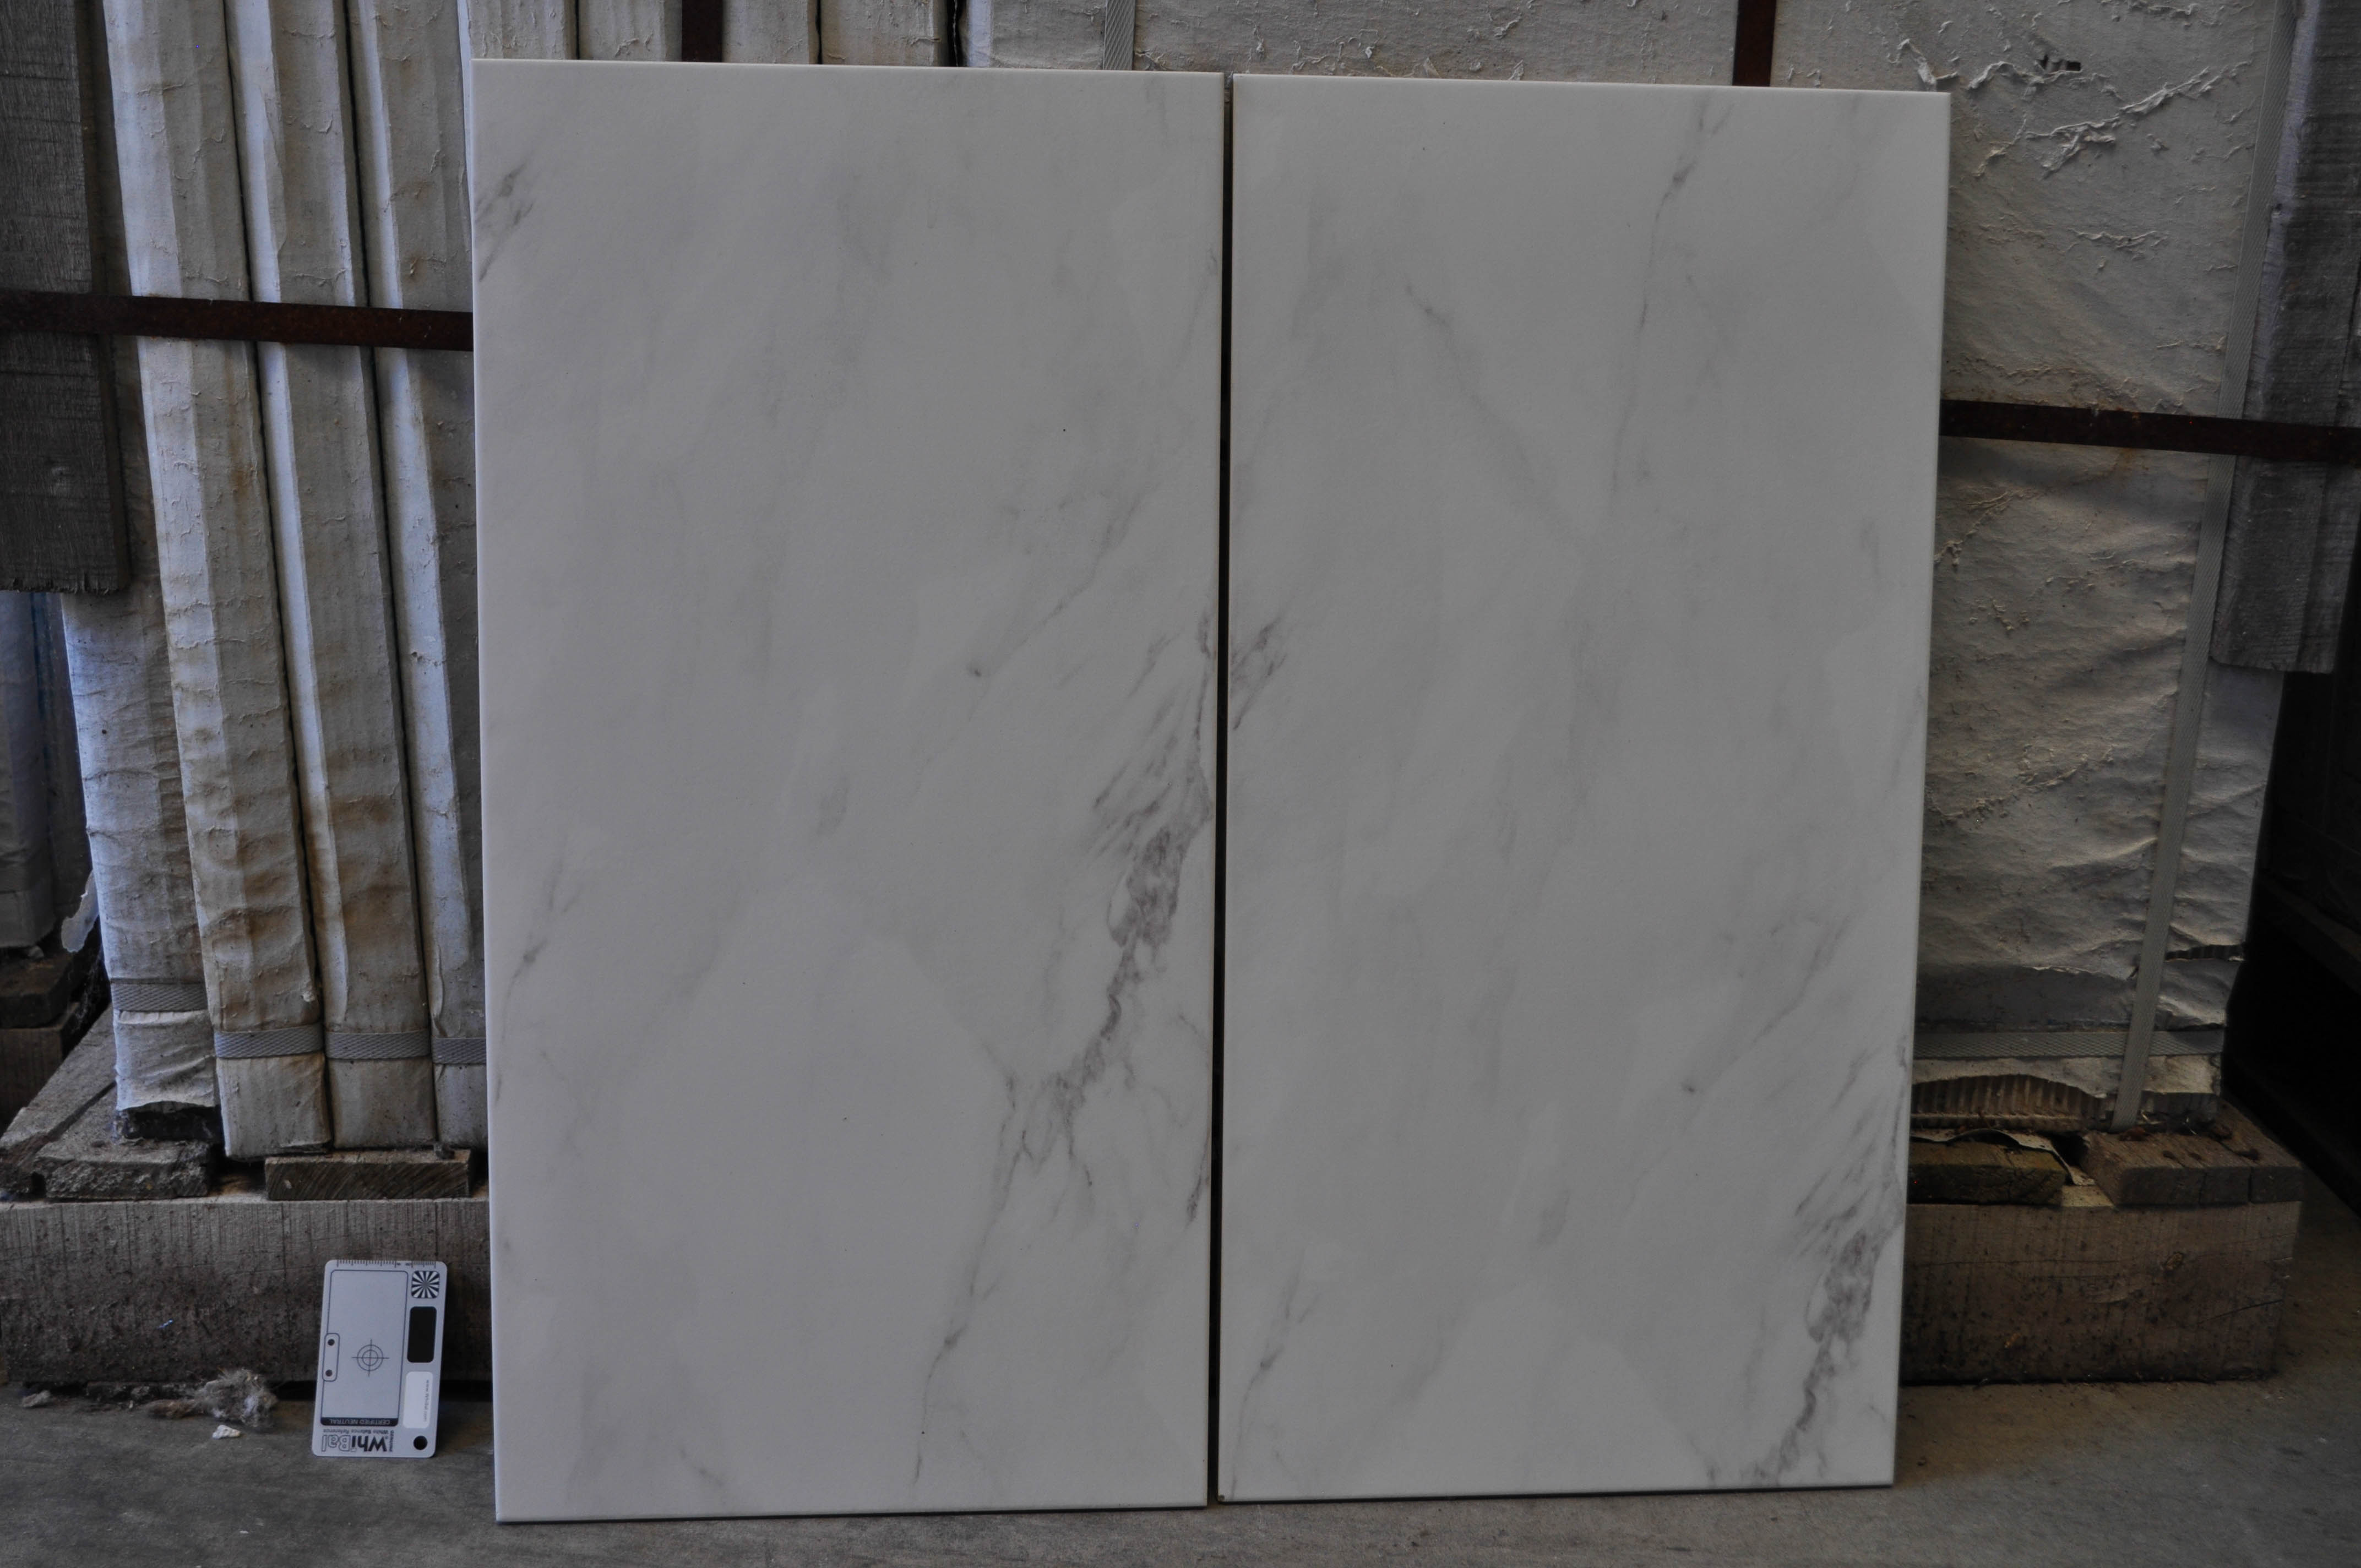 a sales sample of a 30cm x 60cm porcelain tile, with a white marble look, available for purchase from Concord